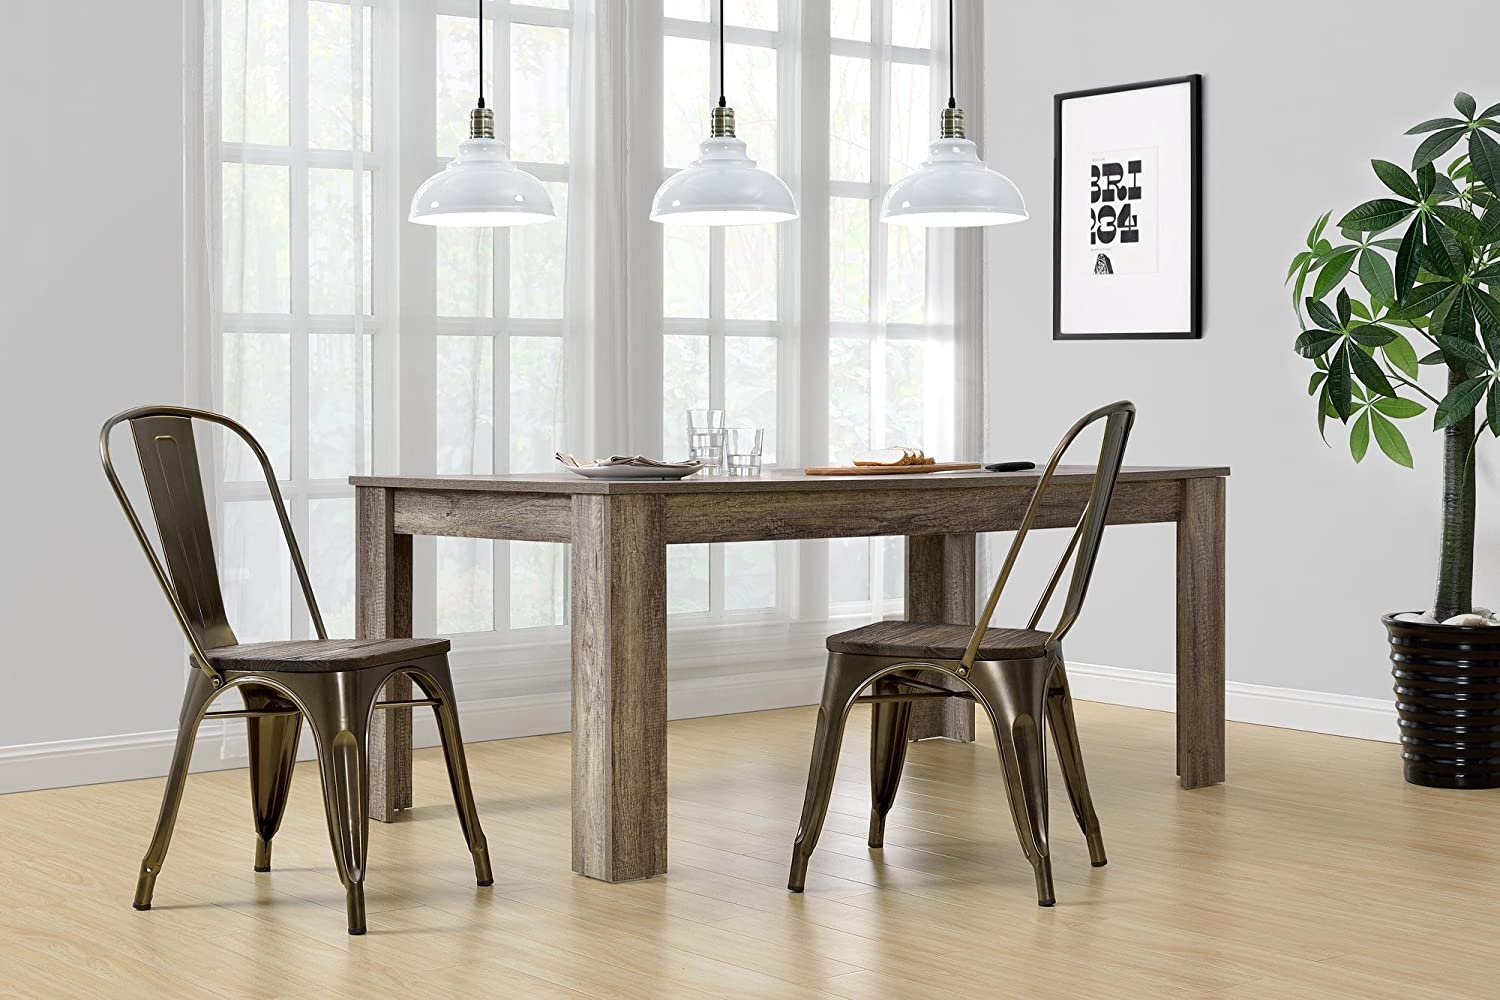 Amazon.com - DHP Fusion Metal Dining Chair with Wood Seat, Set of ...